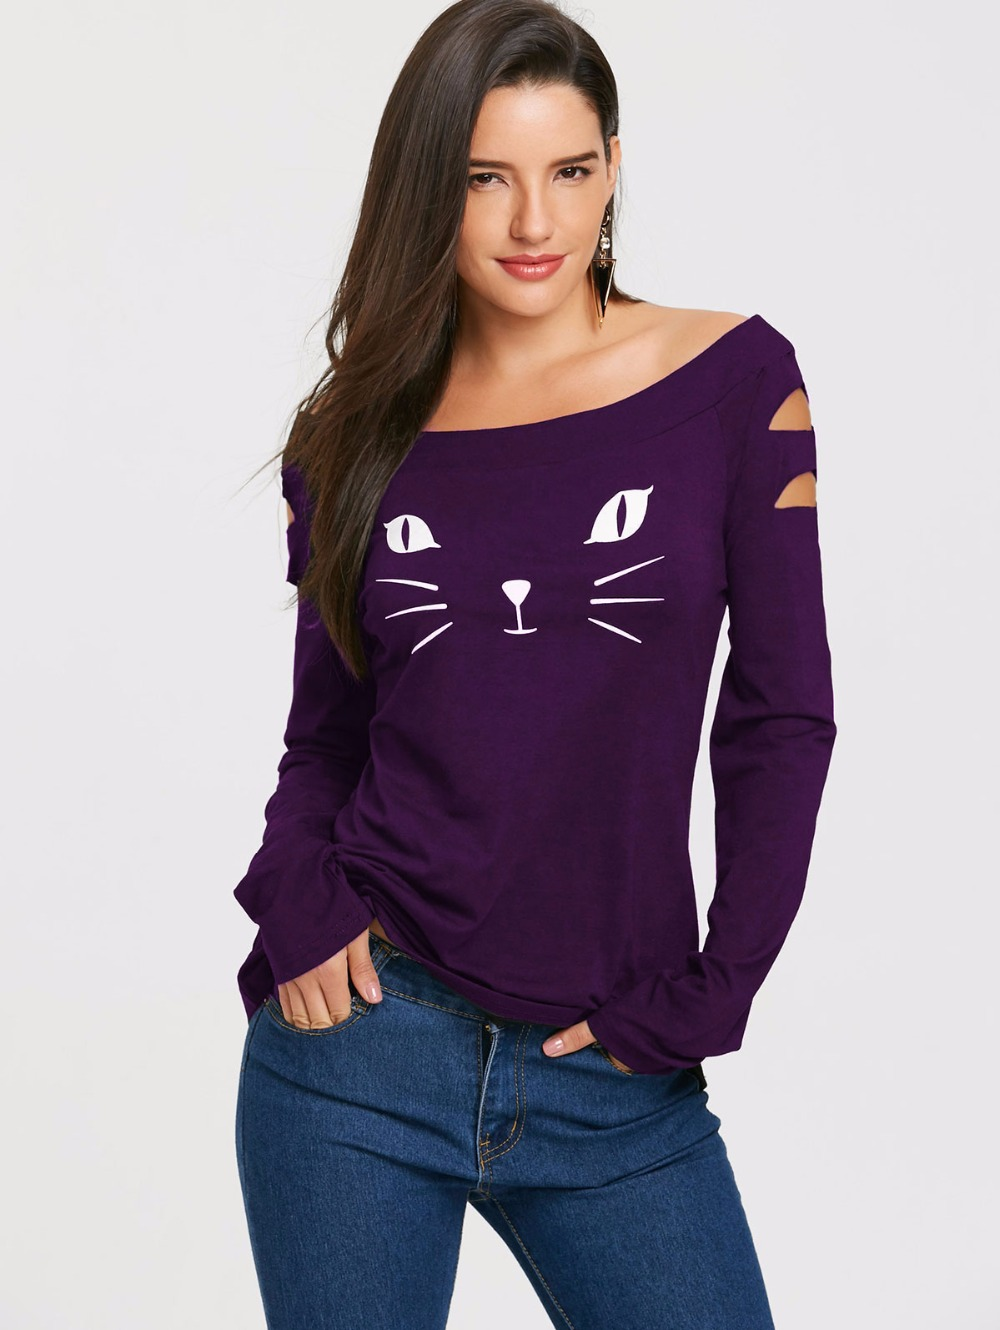 VESTLINDA Women T Shirts Casual Autumn Cat Clothes Womens Tops Cat Face Print Long Sleeve Ripped T-Shirt Women's Clothing Tshirt 21